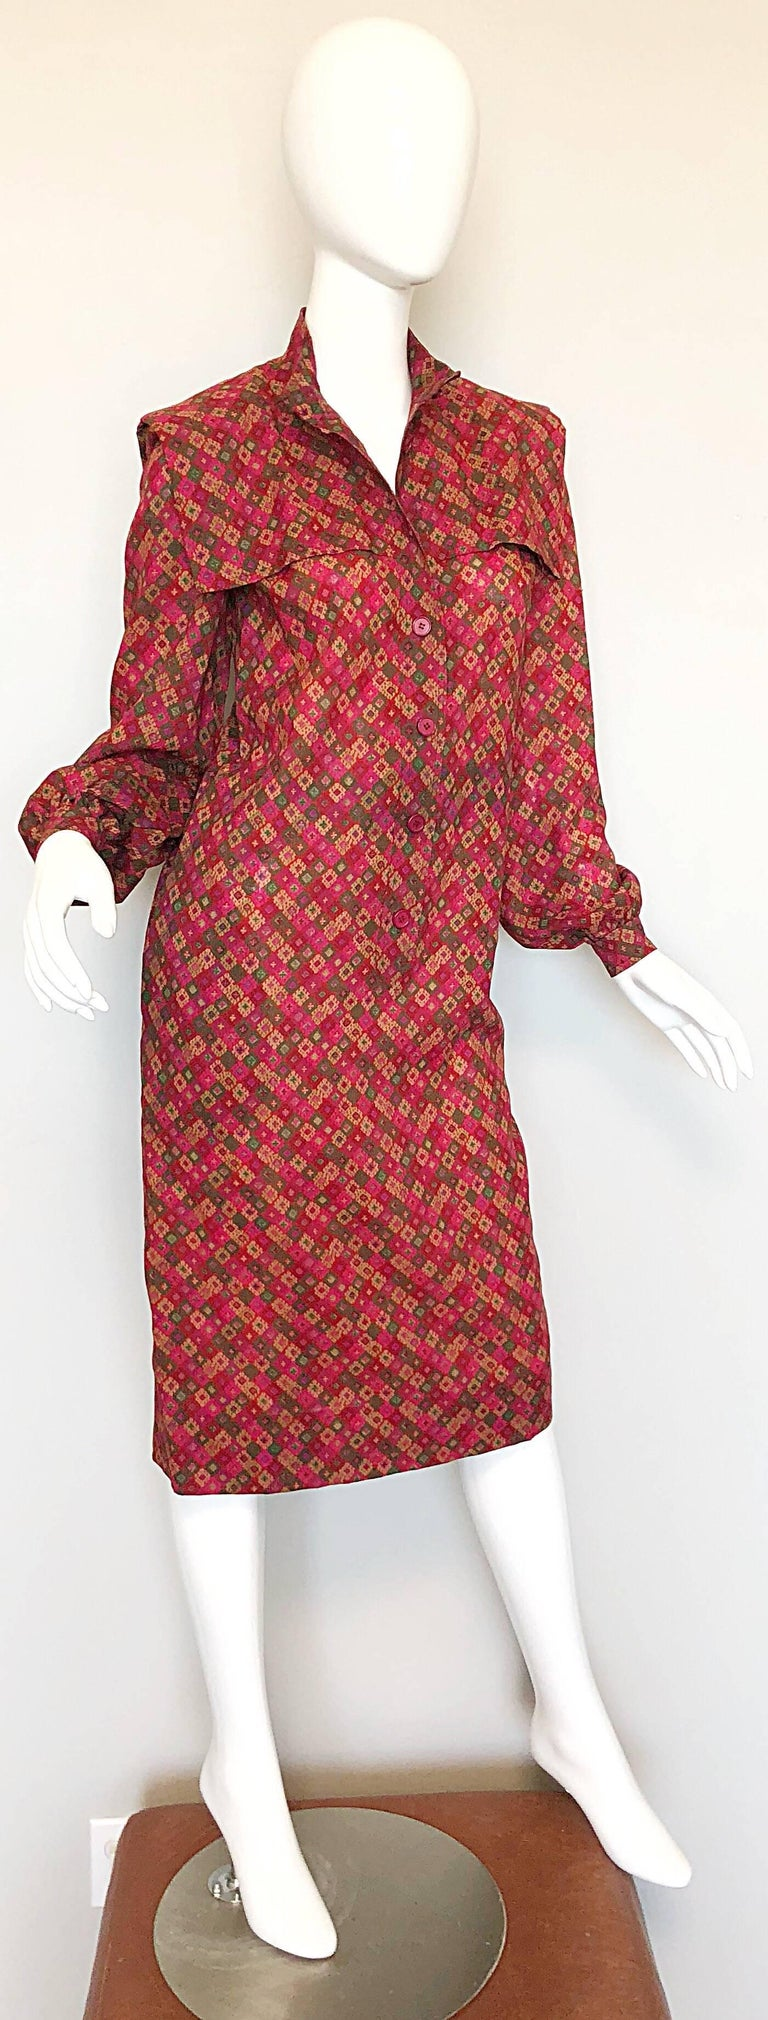 Vintage Givenchy 1980s Mosaic Tile Print Pink + Green Lightweight Wool Sac Dress For Sale 4